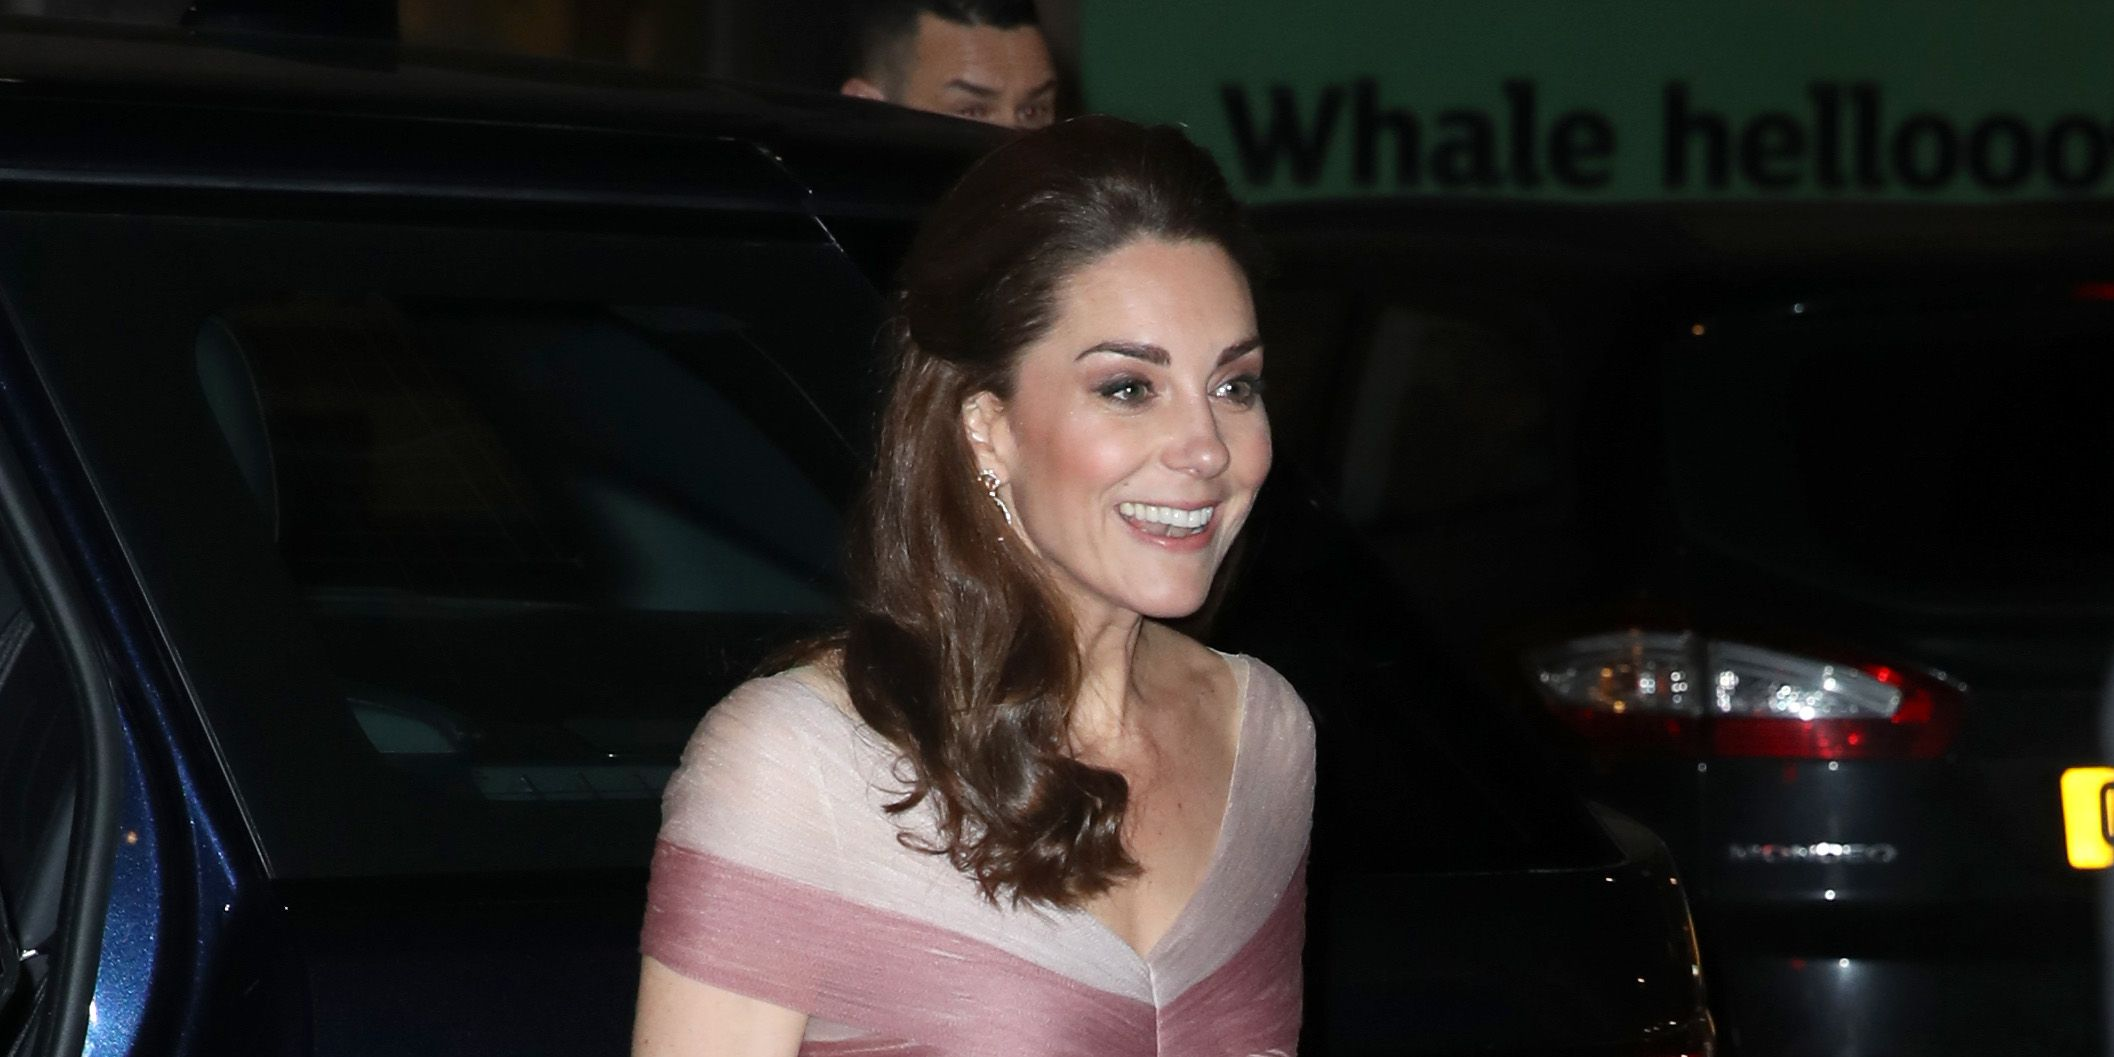 Kate Middleton Just Arrived at the V&A Wearing a Stunning Rose-Colored Gucci Gown